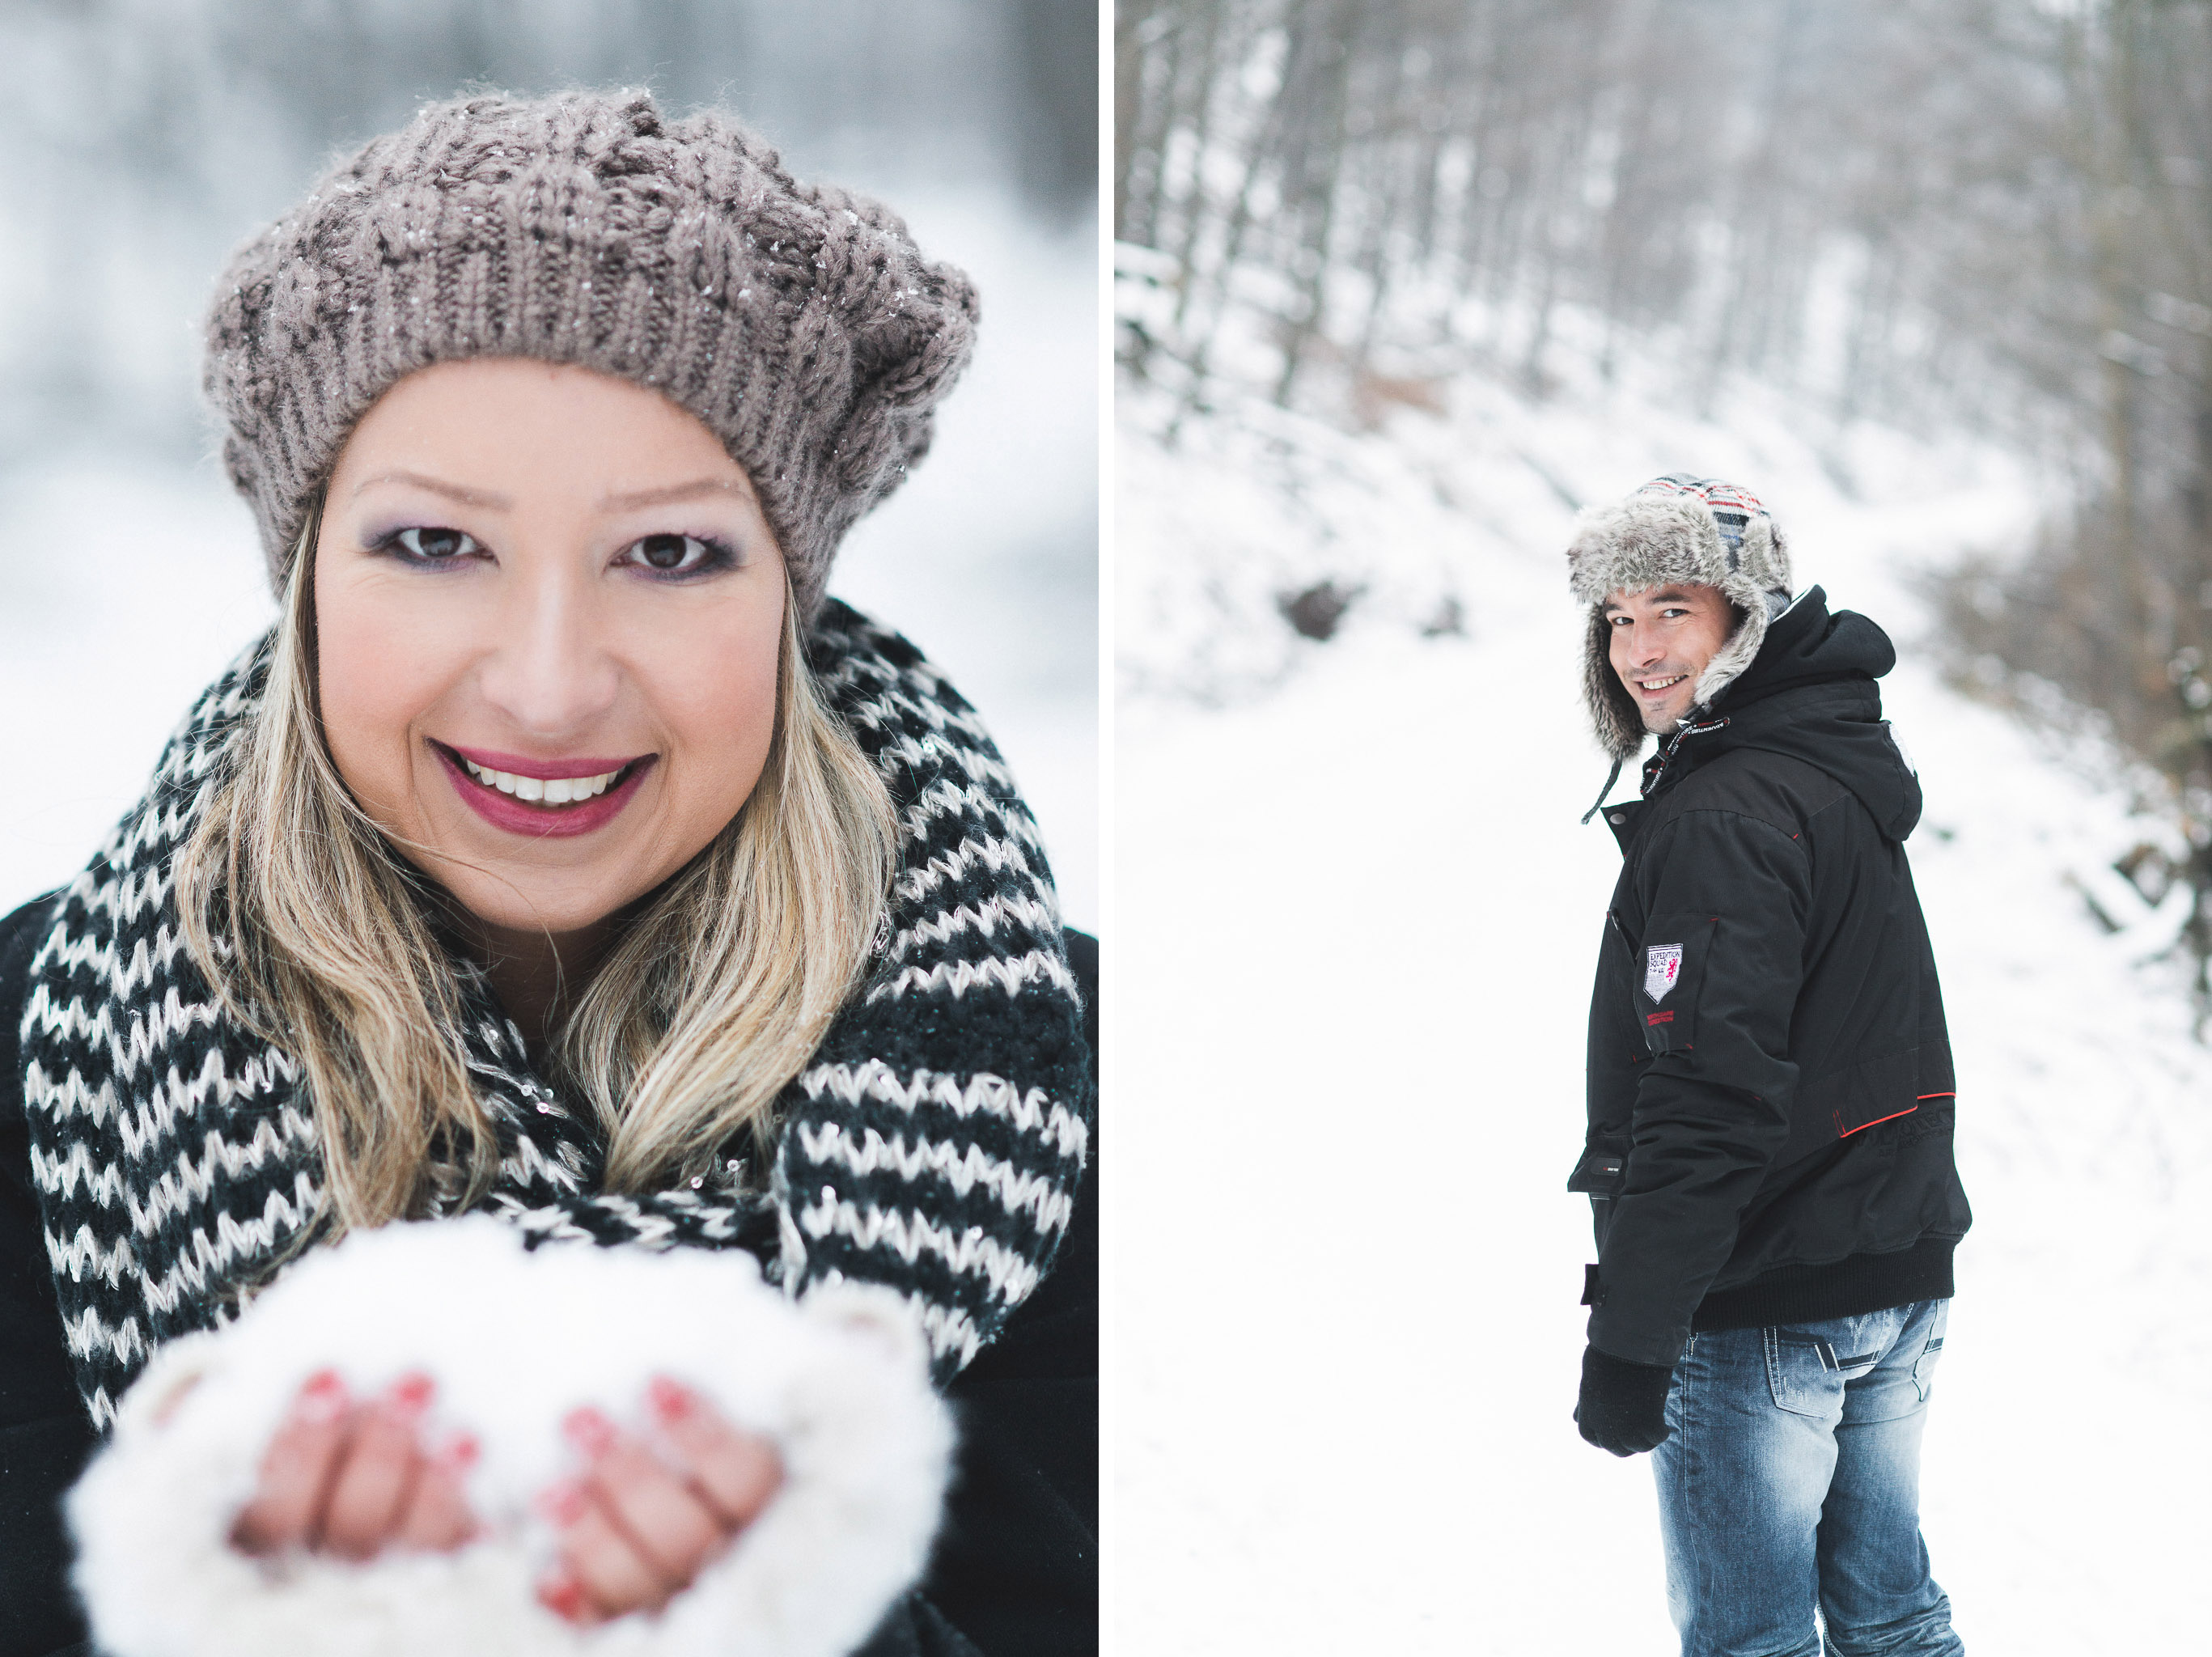 lindaandviktor engagement wedding photography sweden hungary international photographer